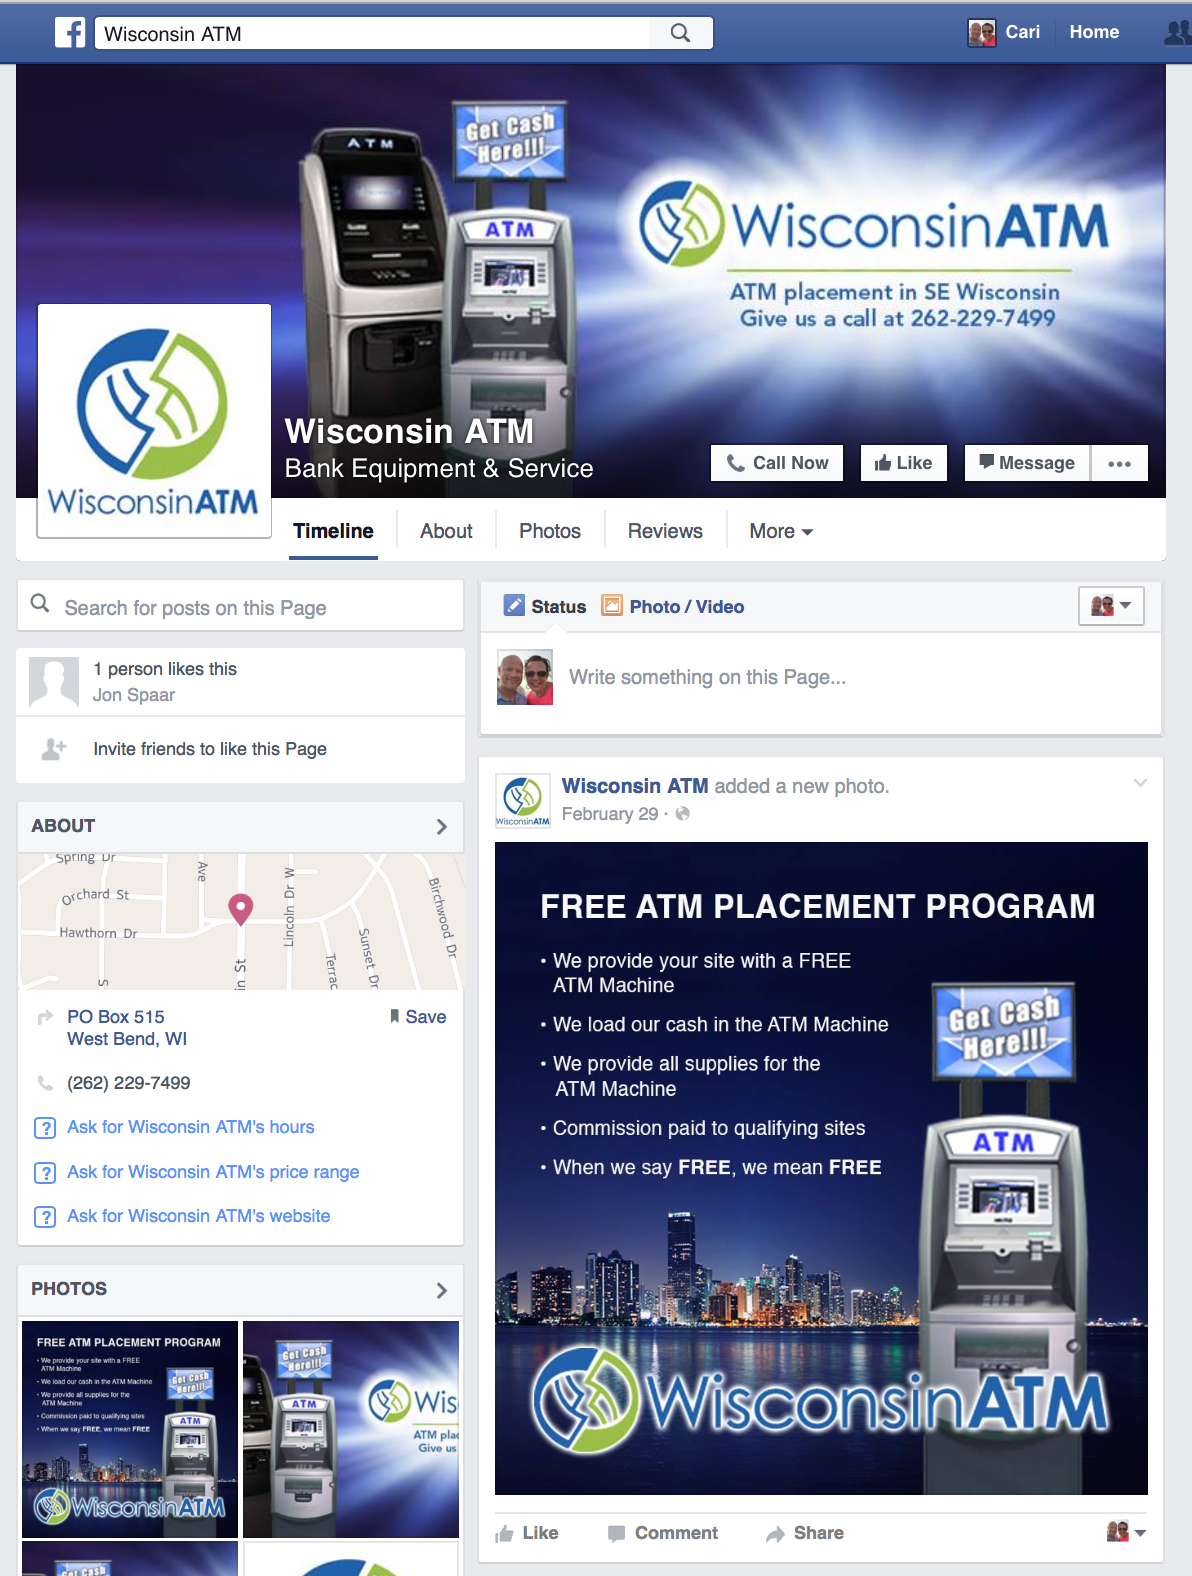 Wisconsin ATM Facebook page